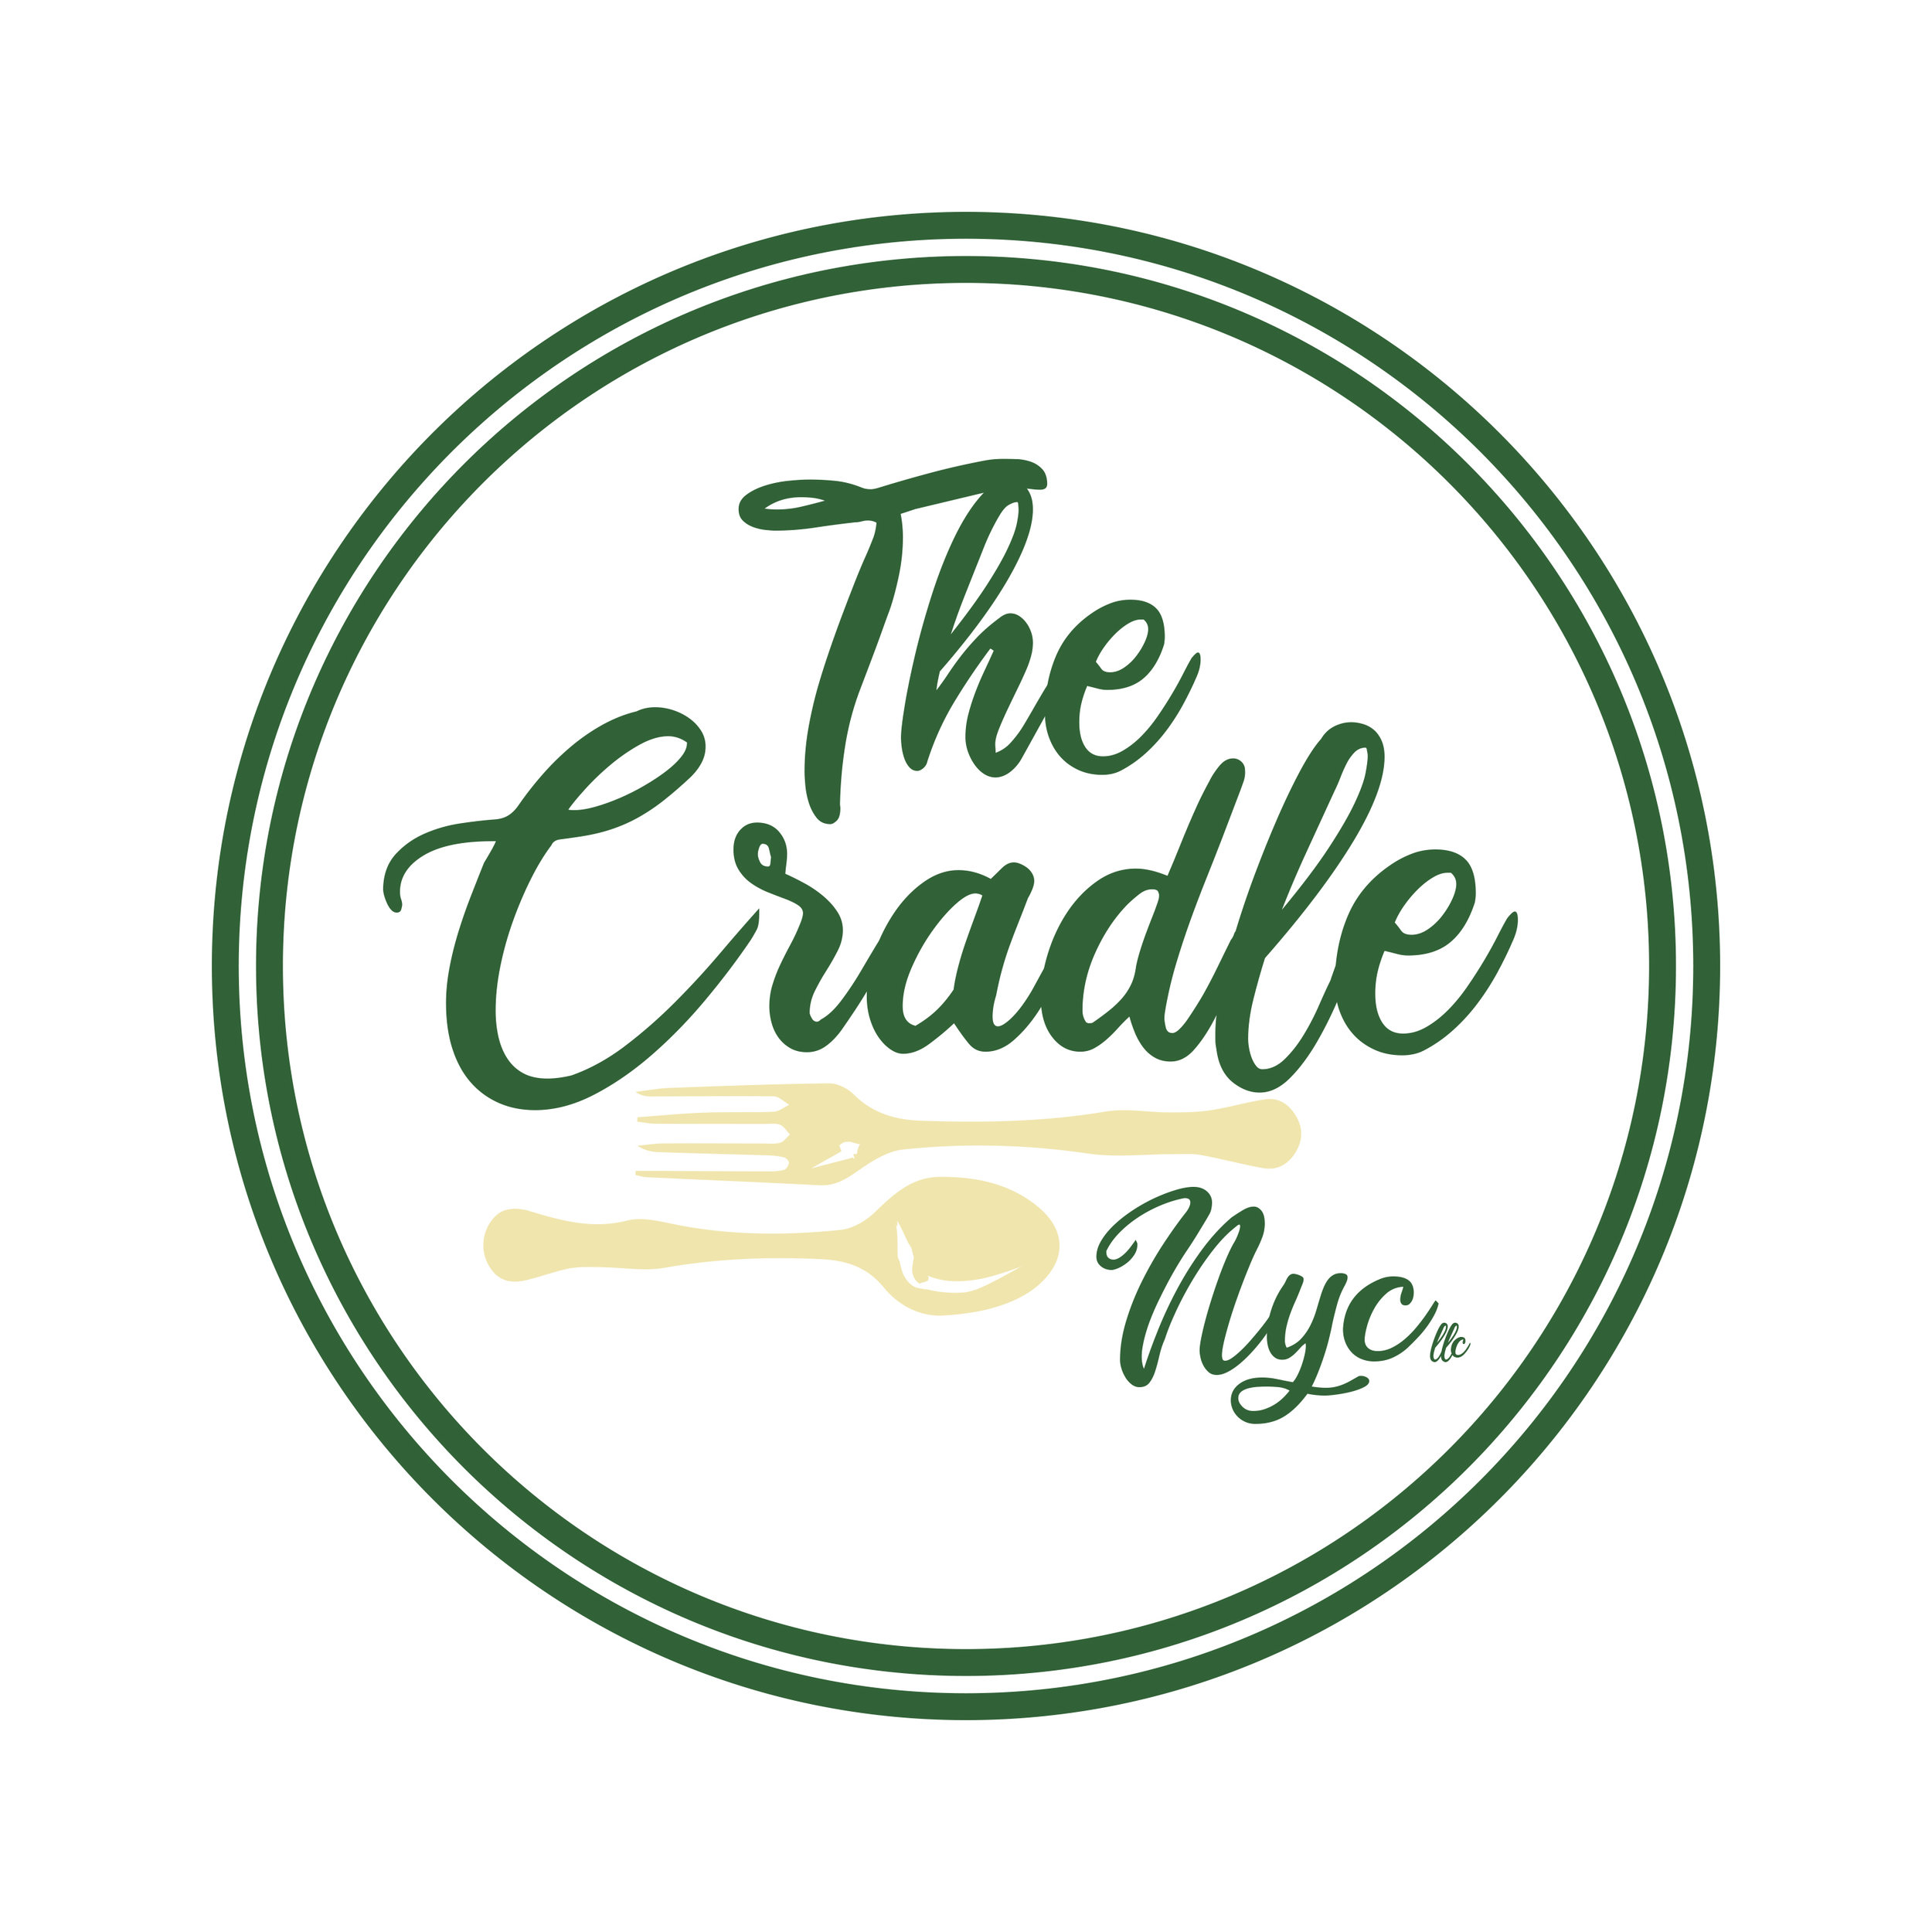 The Cradle NYC 2 Color logo.jpg